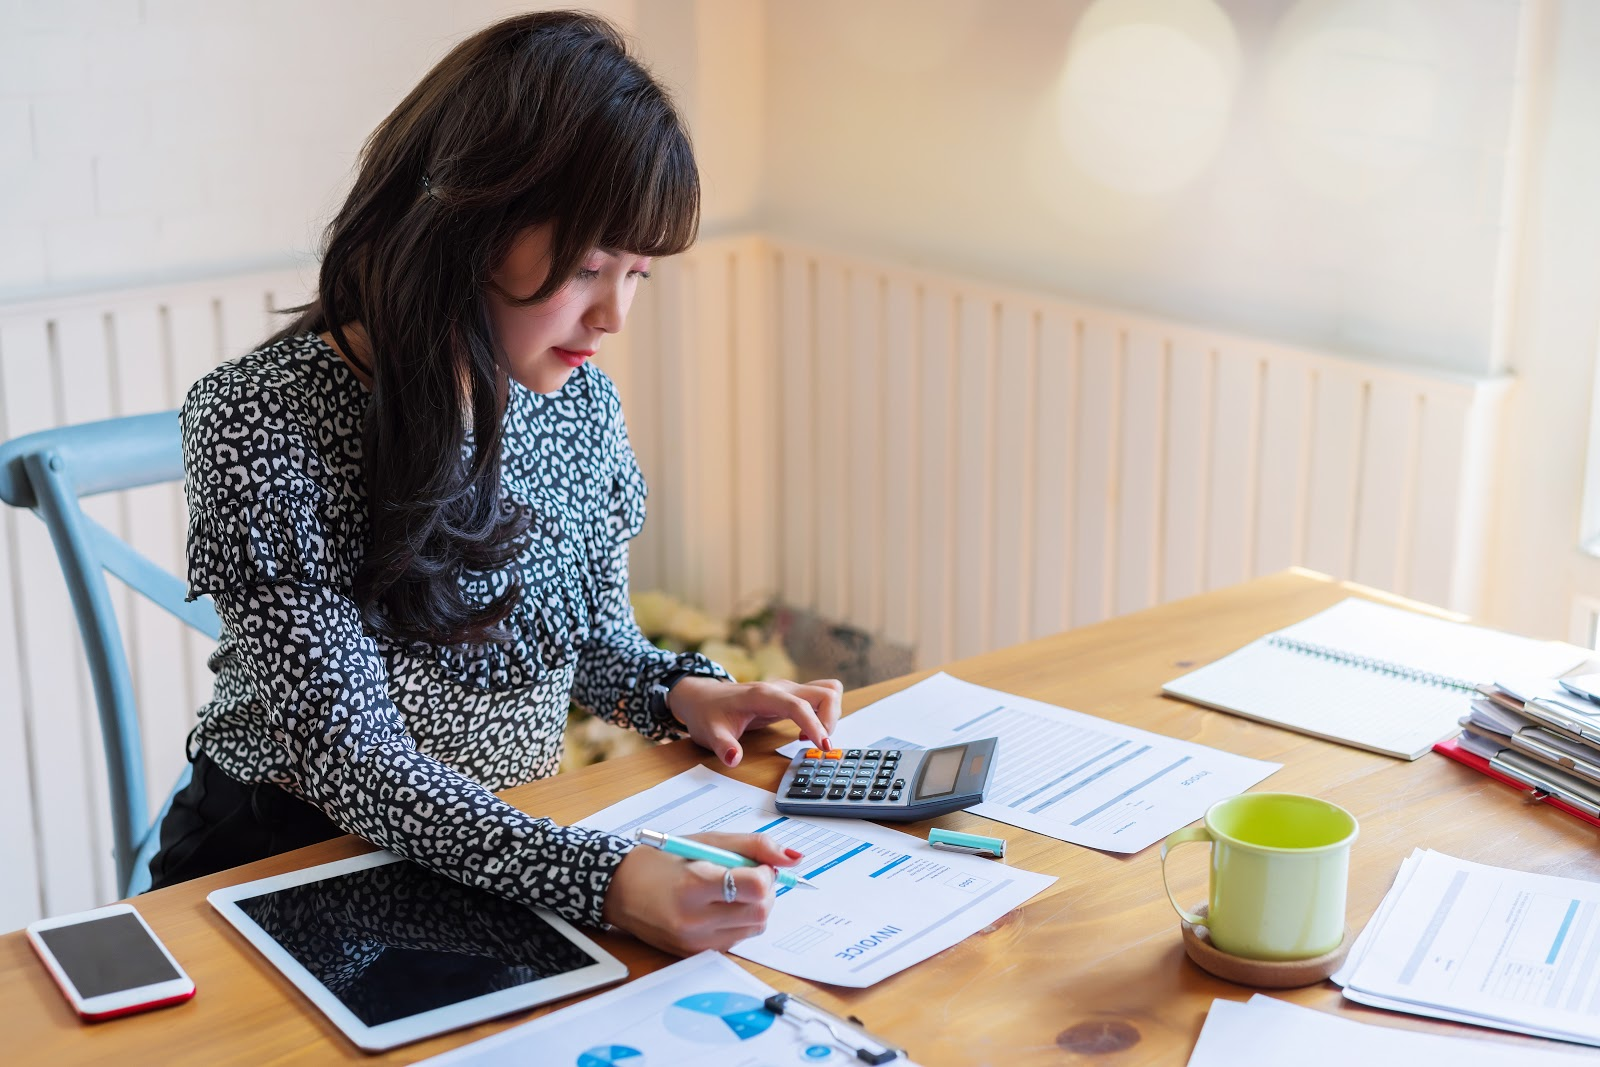 How to get a late fee waived: A woman uses a calculator while paying her bills